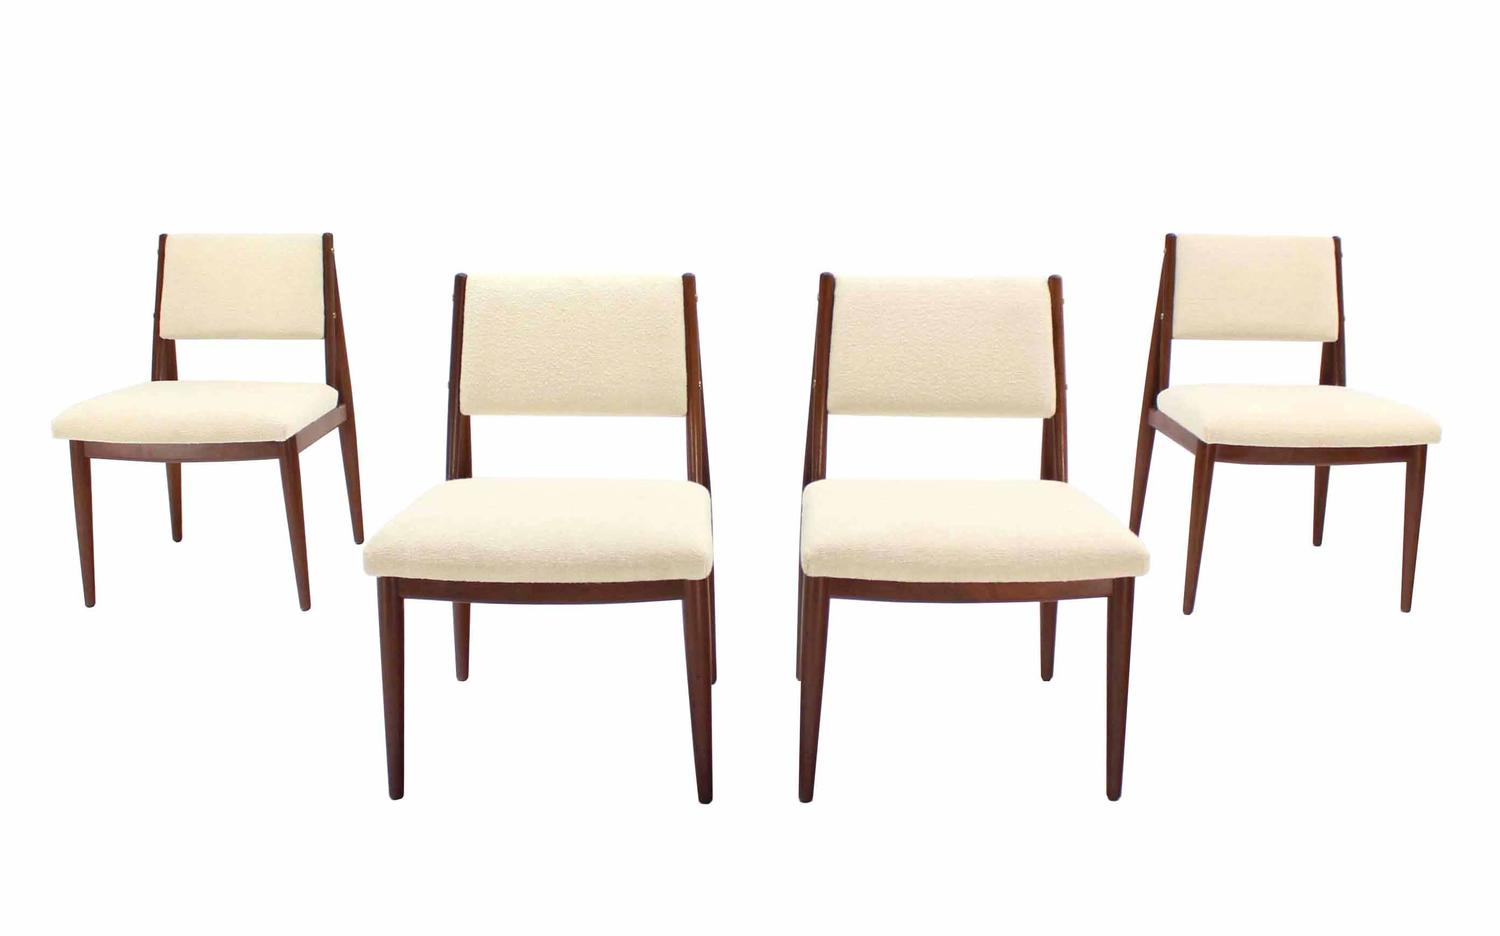 Set of four danish mid century modern dining chairs with new seats at